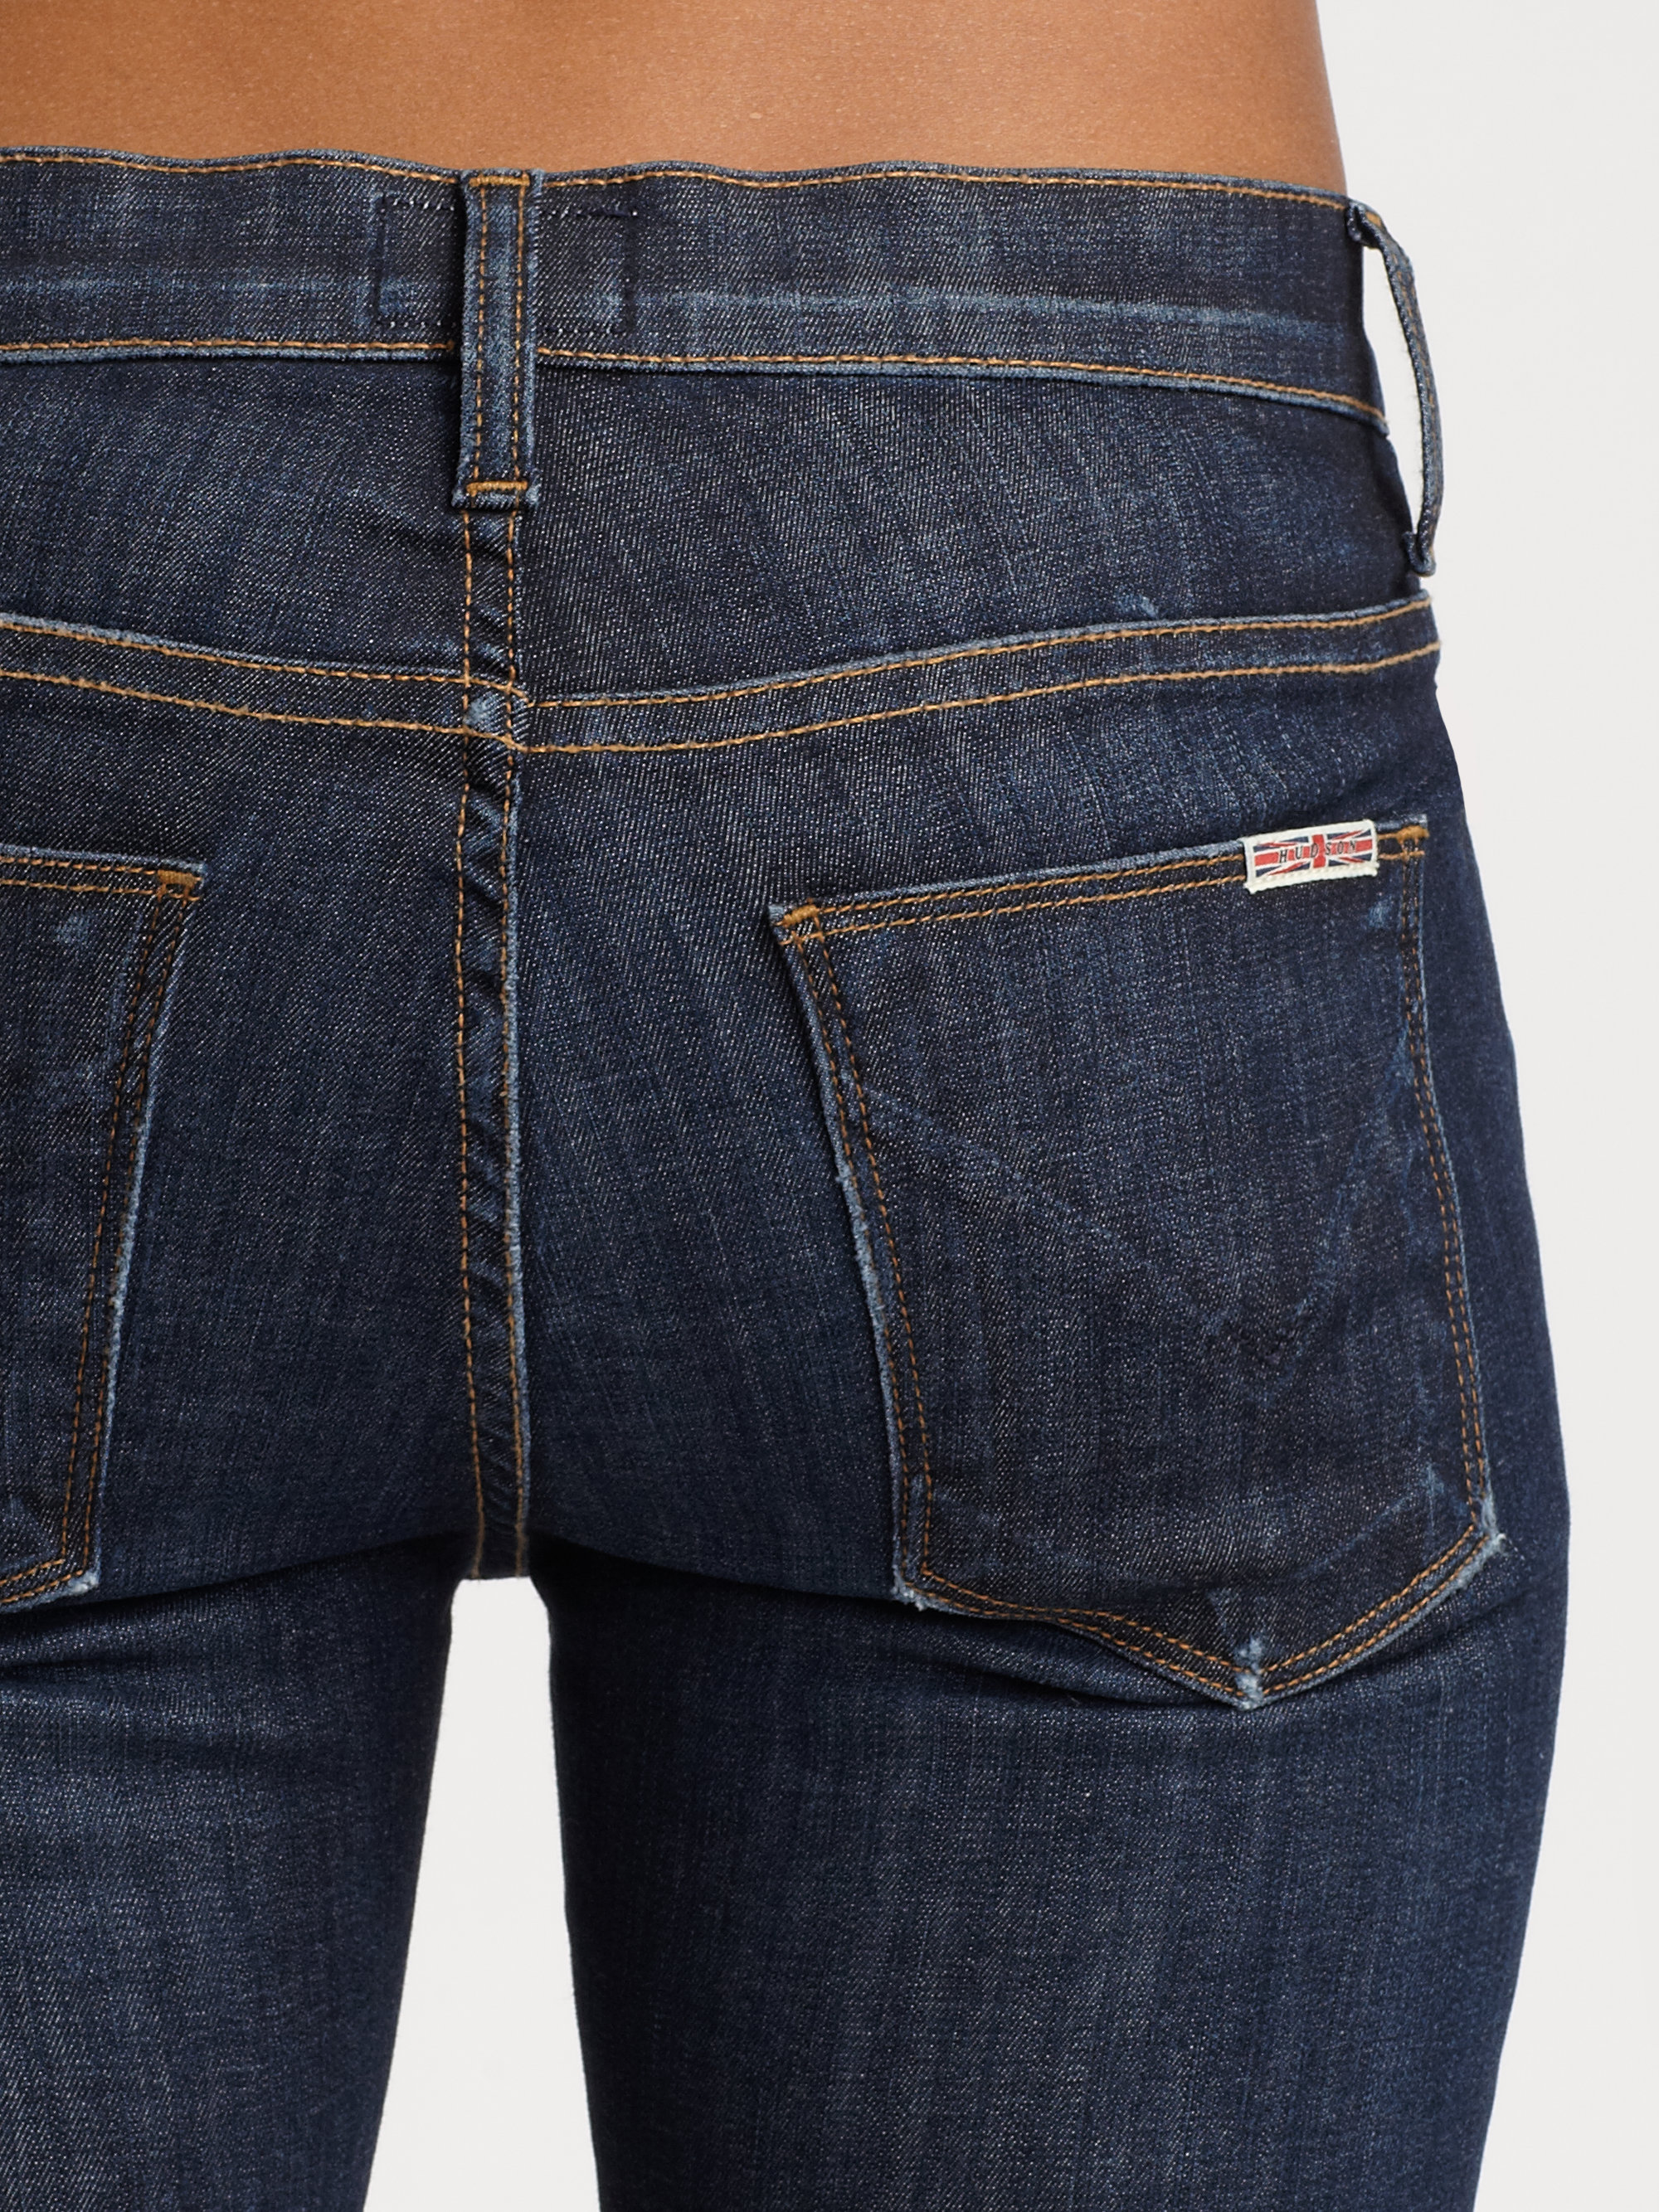 81ff01a3226 Hudson Jeans Nico Midrise Super Skinny Jeans in Blue - Lyst